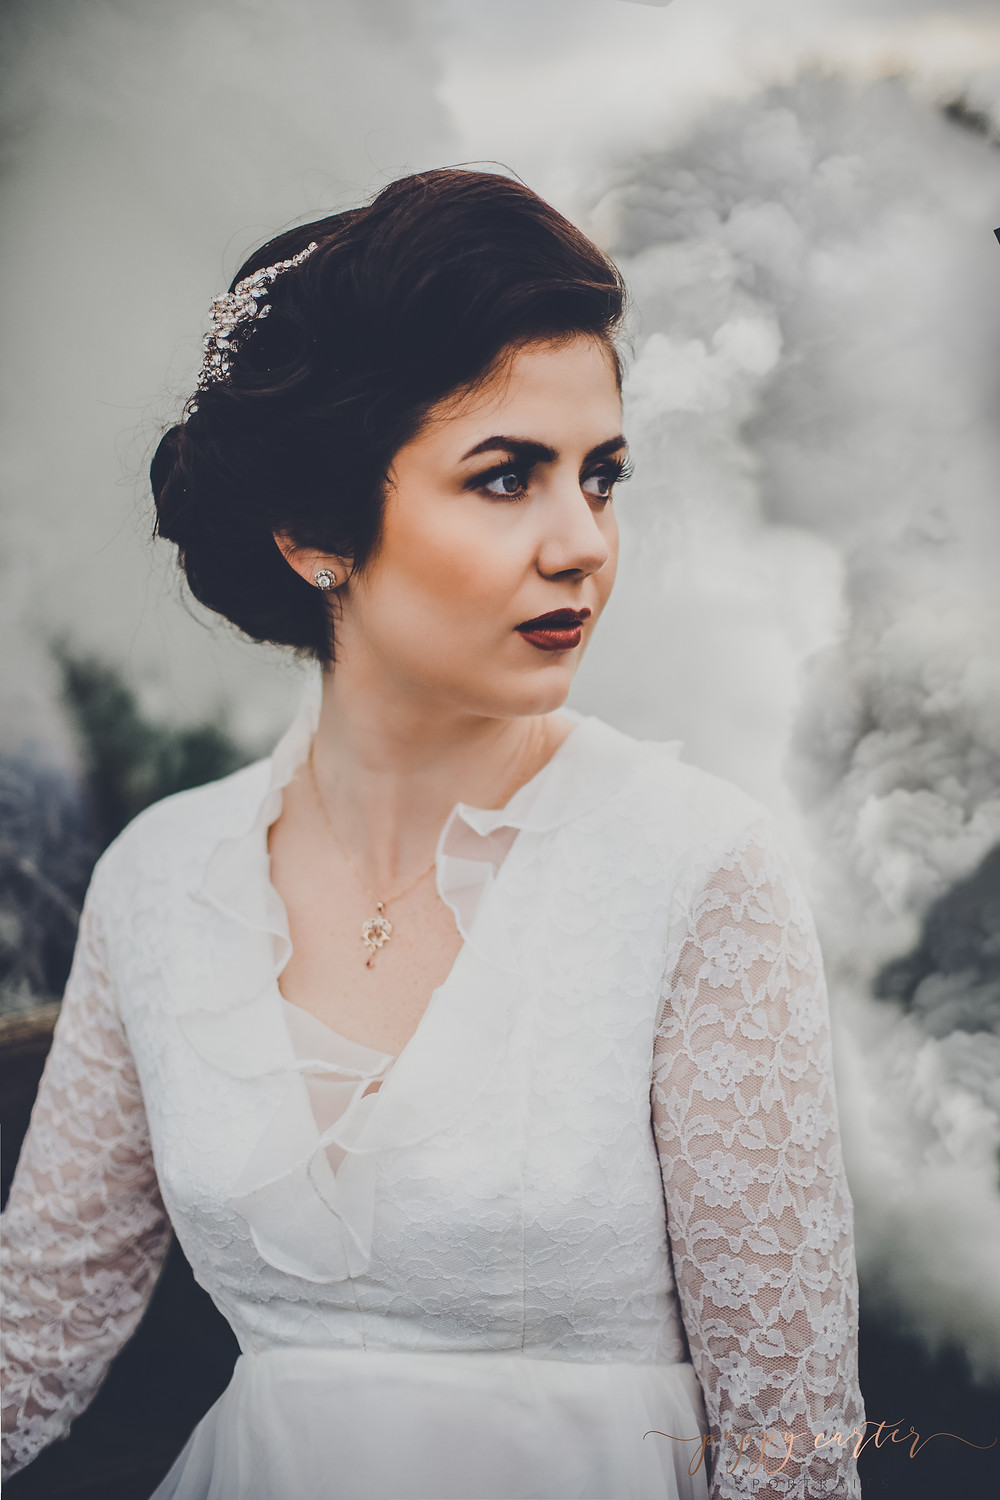 Poppy Carter Portraits Alternative Wedding Photography Buckinghamshire Aylesbury Bicester Oxford Cotswolds - Smoke Bombs